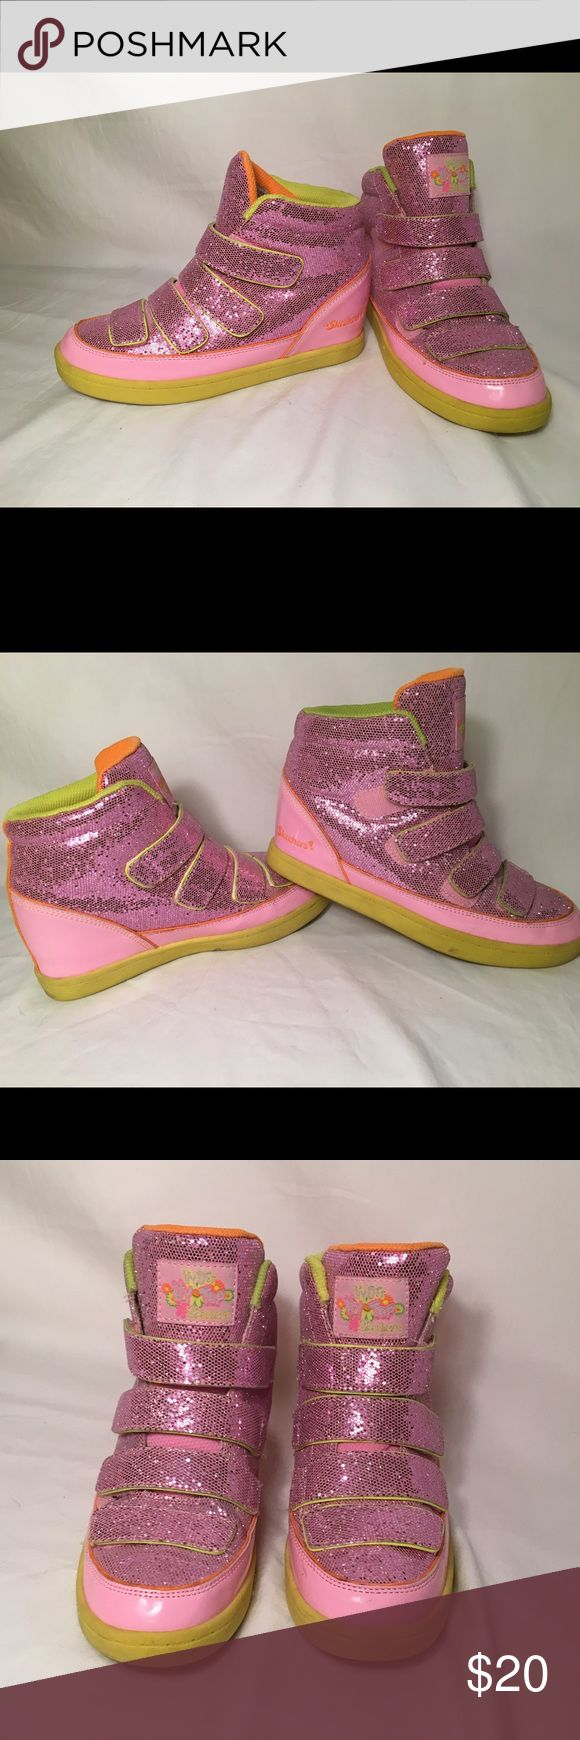 Sketcher Wedged Sneakers Used but in good shape! Adorable pink glitter wedges for the ultimate fashionista! Skechers Shoes Sneakers